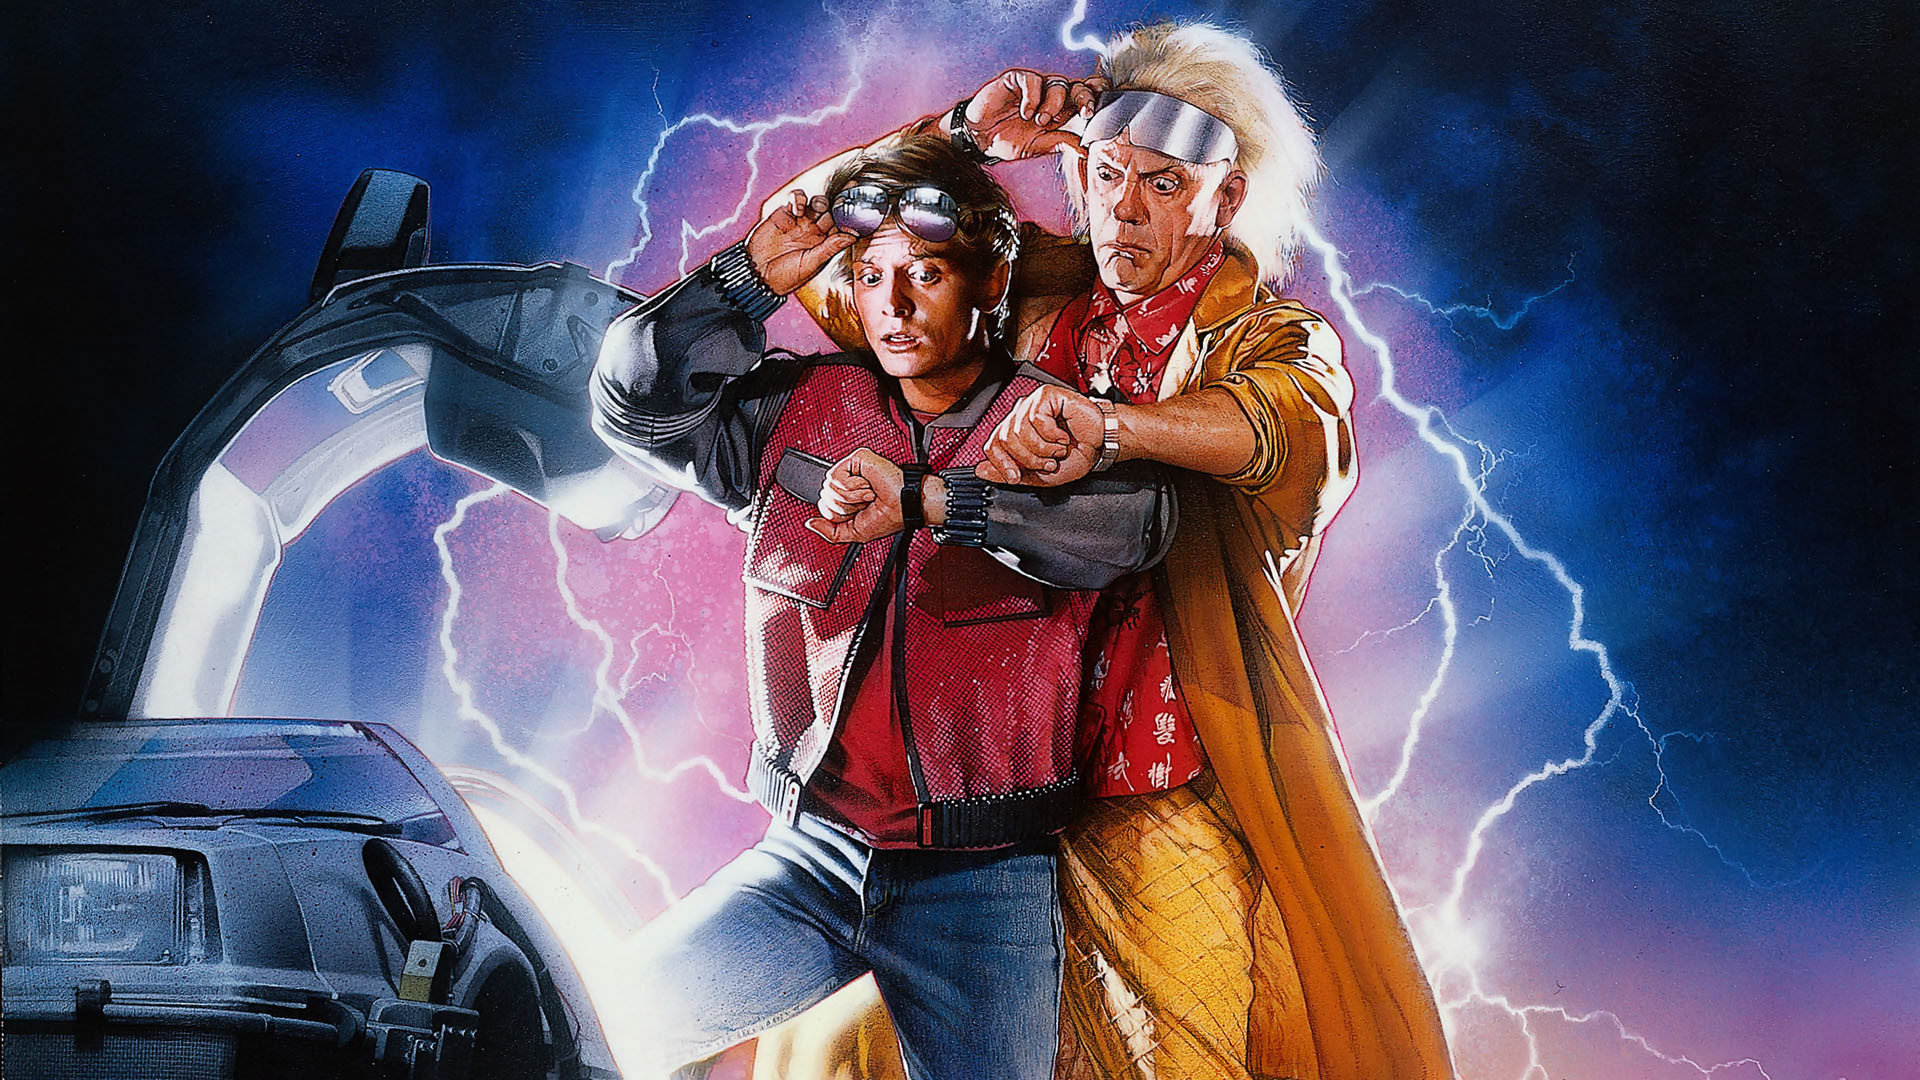 'Back to the Future' is coming back to theaters! Great Scott!